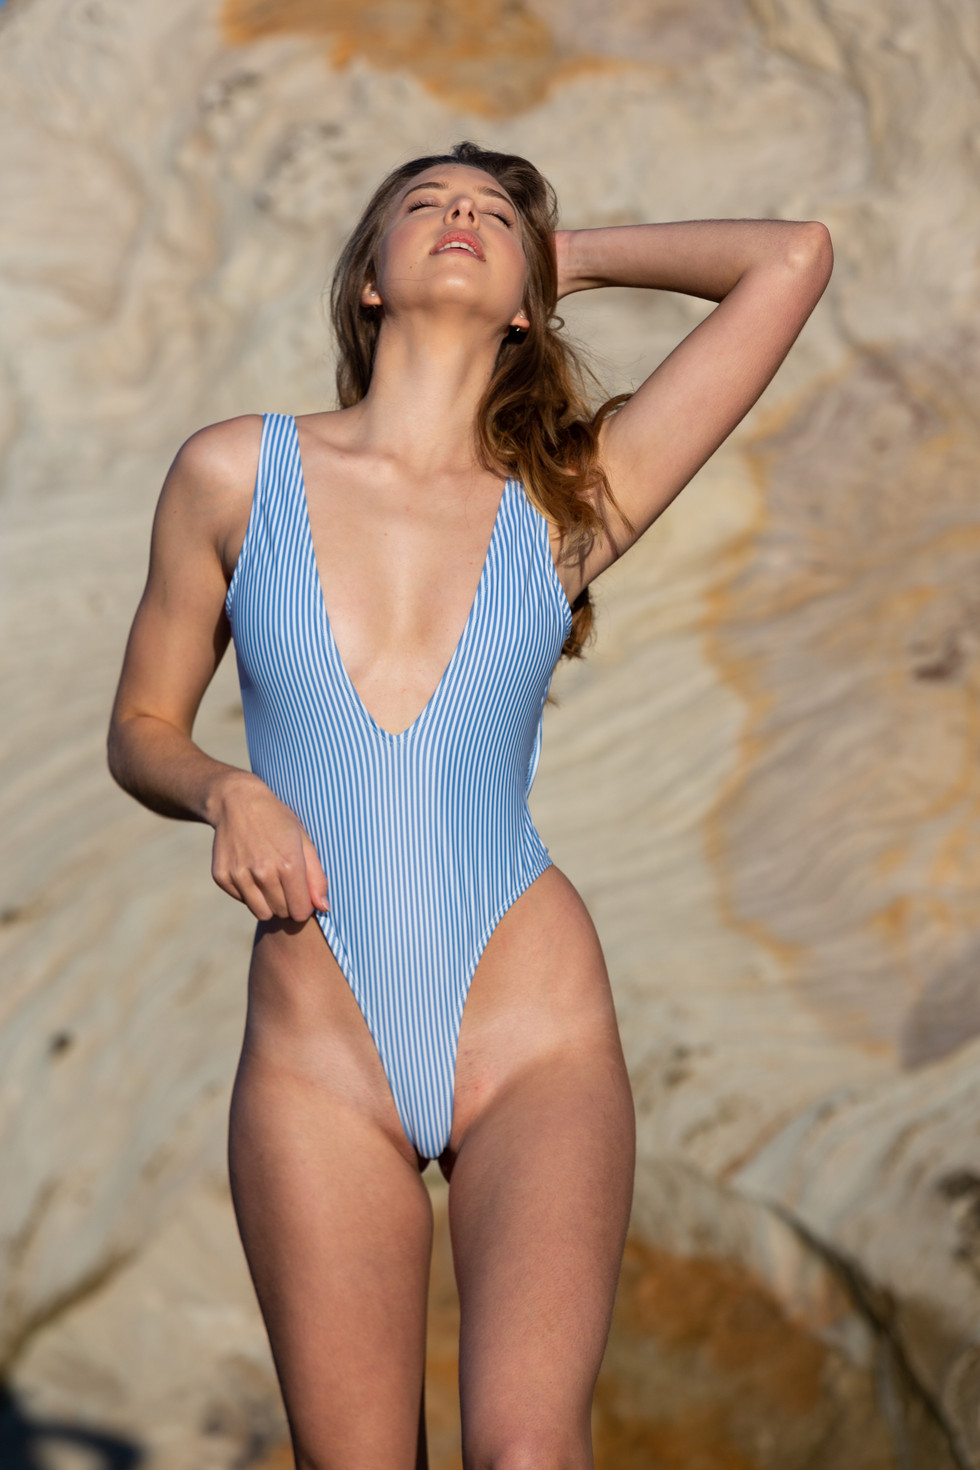 Charlotte_by_CoogeePhotography-1046128.j